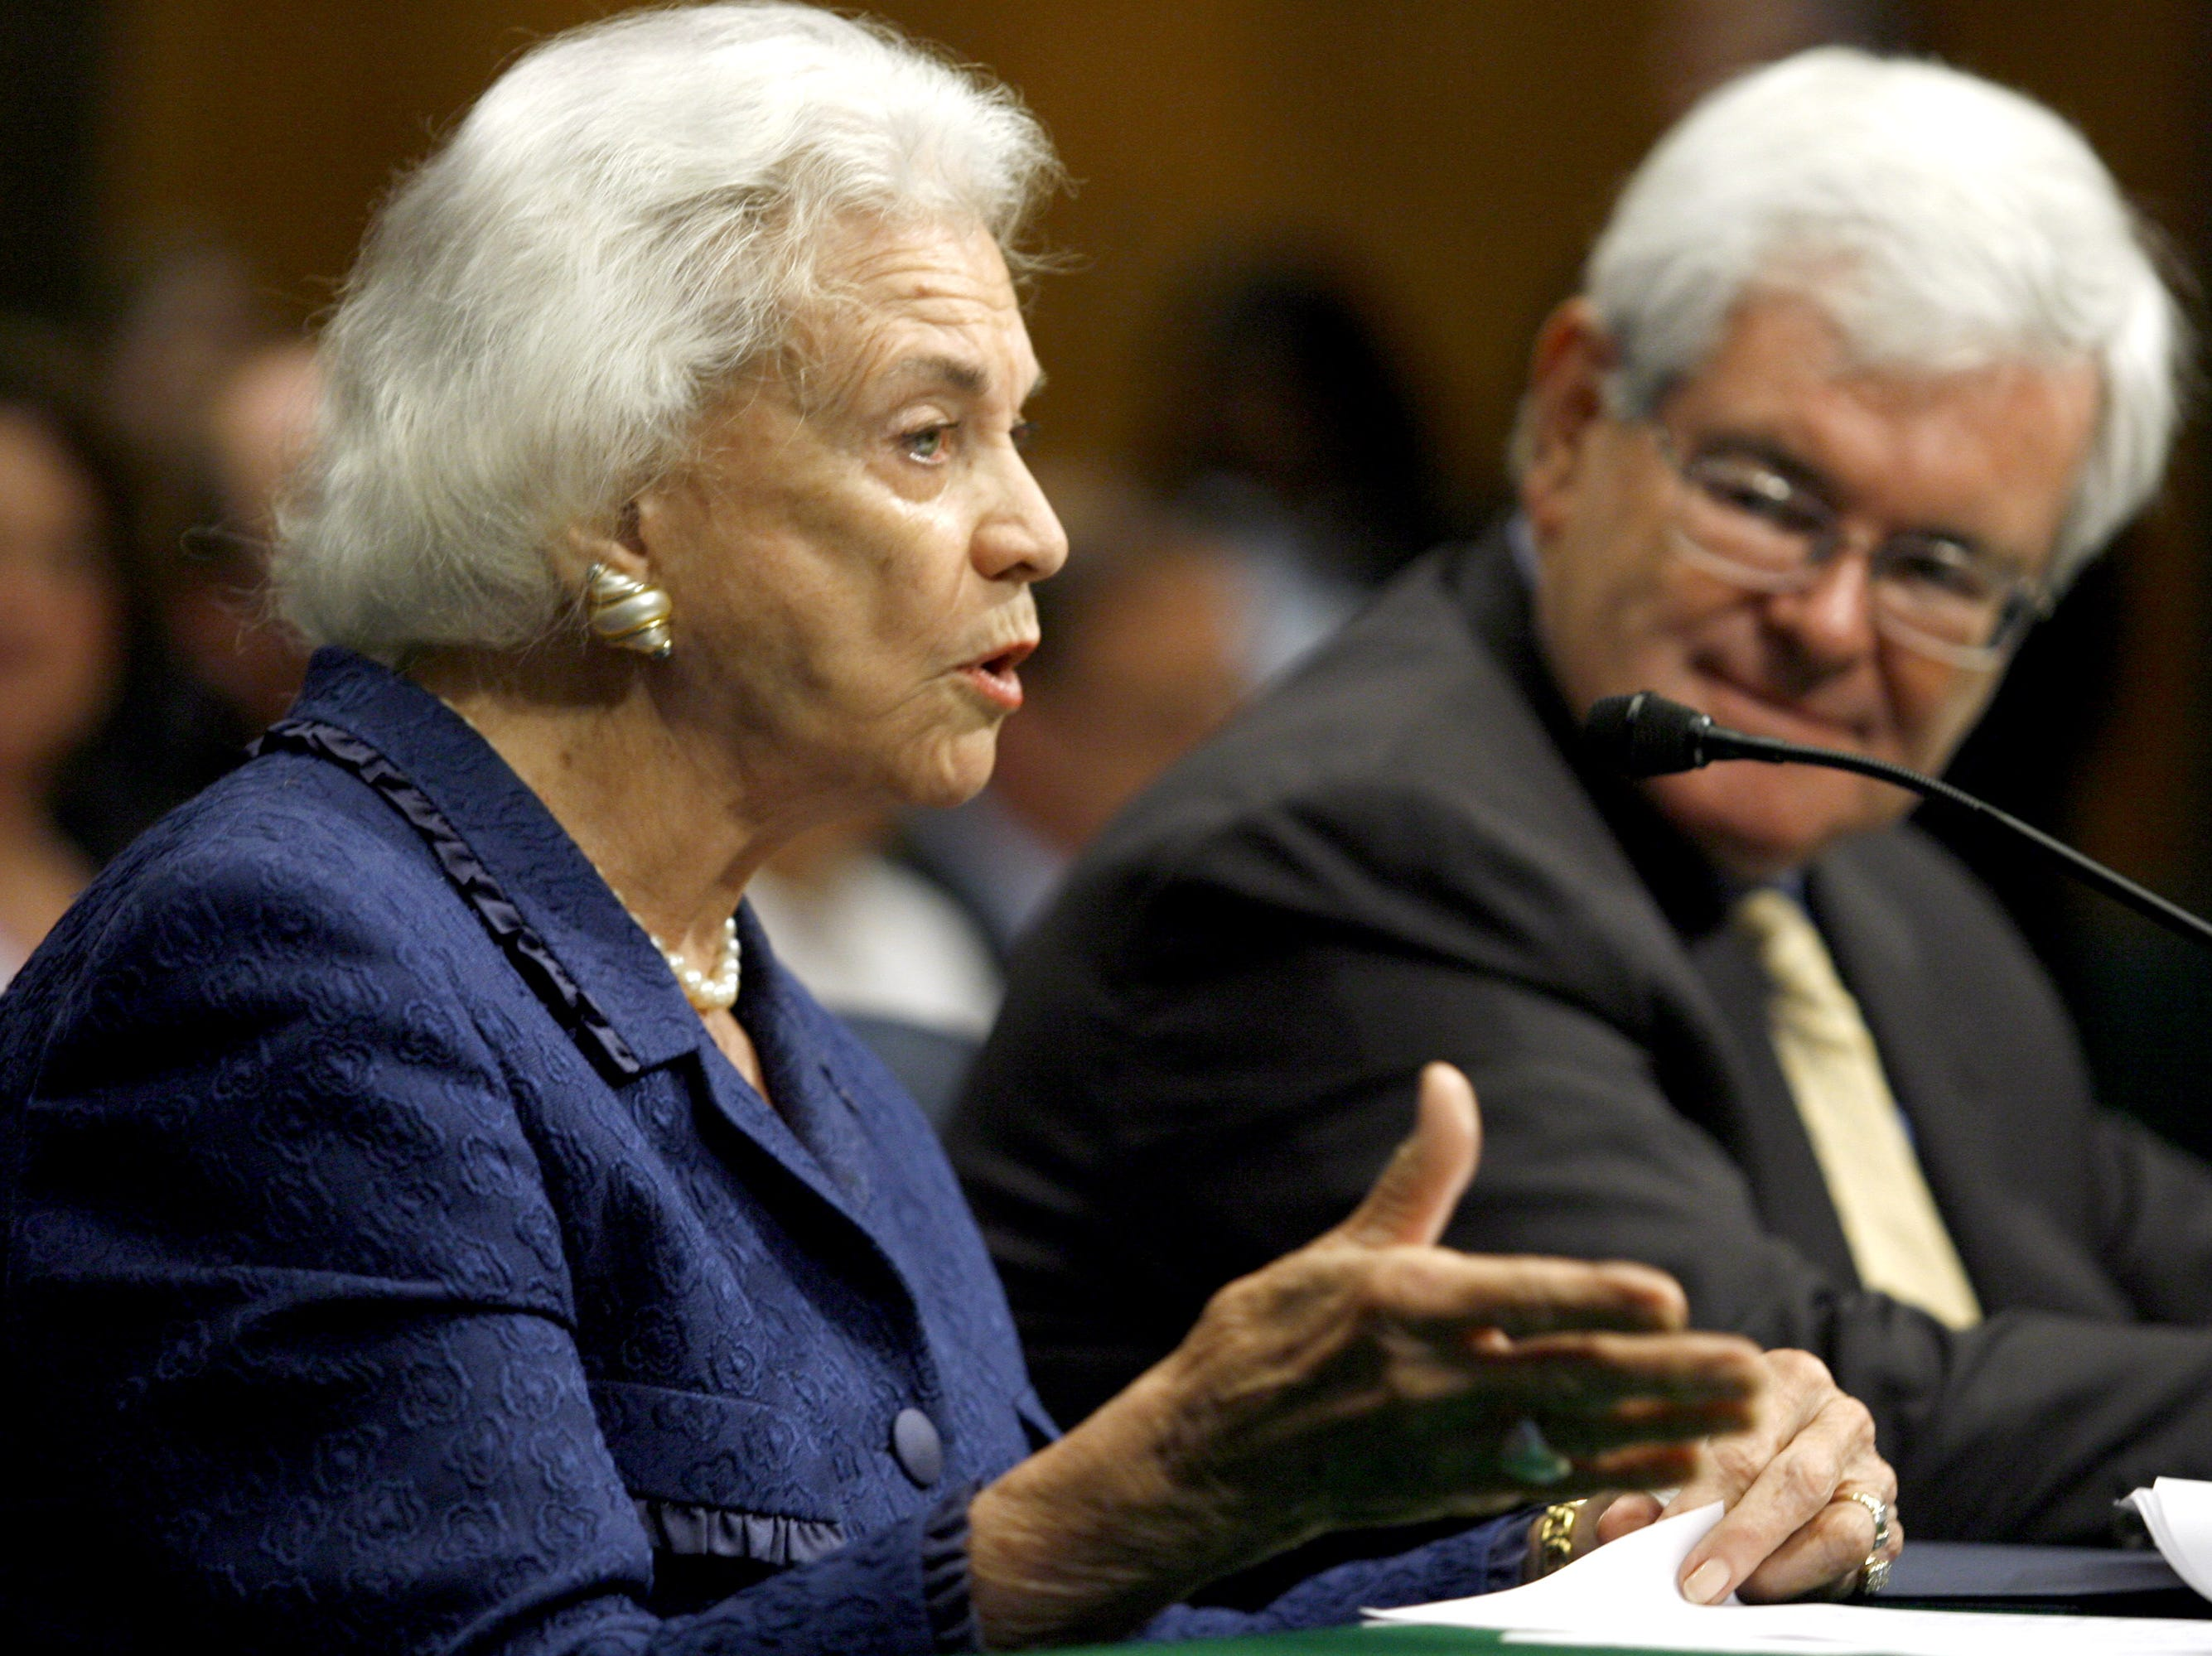 Former House Speaker Newt Gingrich, right, looks on as former Supreme Court Justice Sandra Day O'Connor testifies on Capitol Hill in Washington, Wednesday, May 14, 2008, before the Senate Special Committee on Aging hearing on Alzheimer's disease.